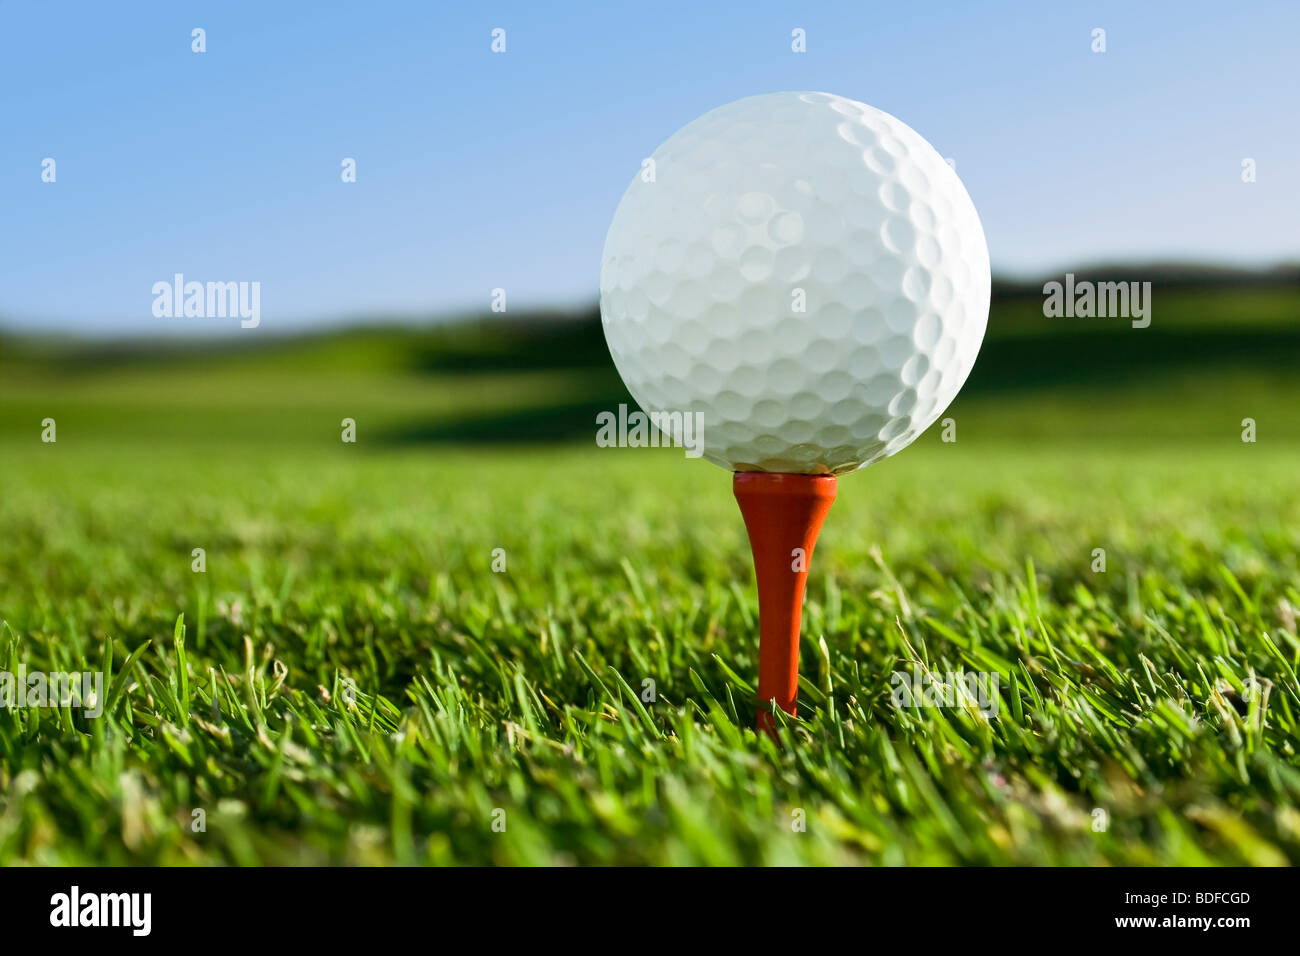 golfball on red tee on golfcourse - Stock Image